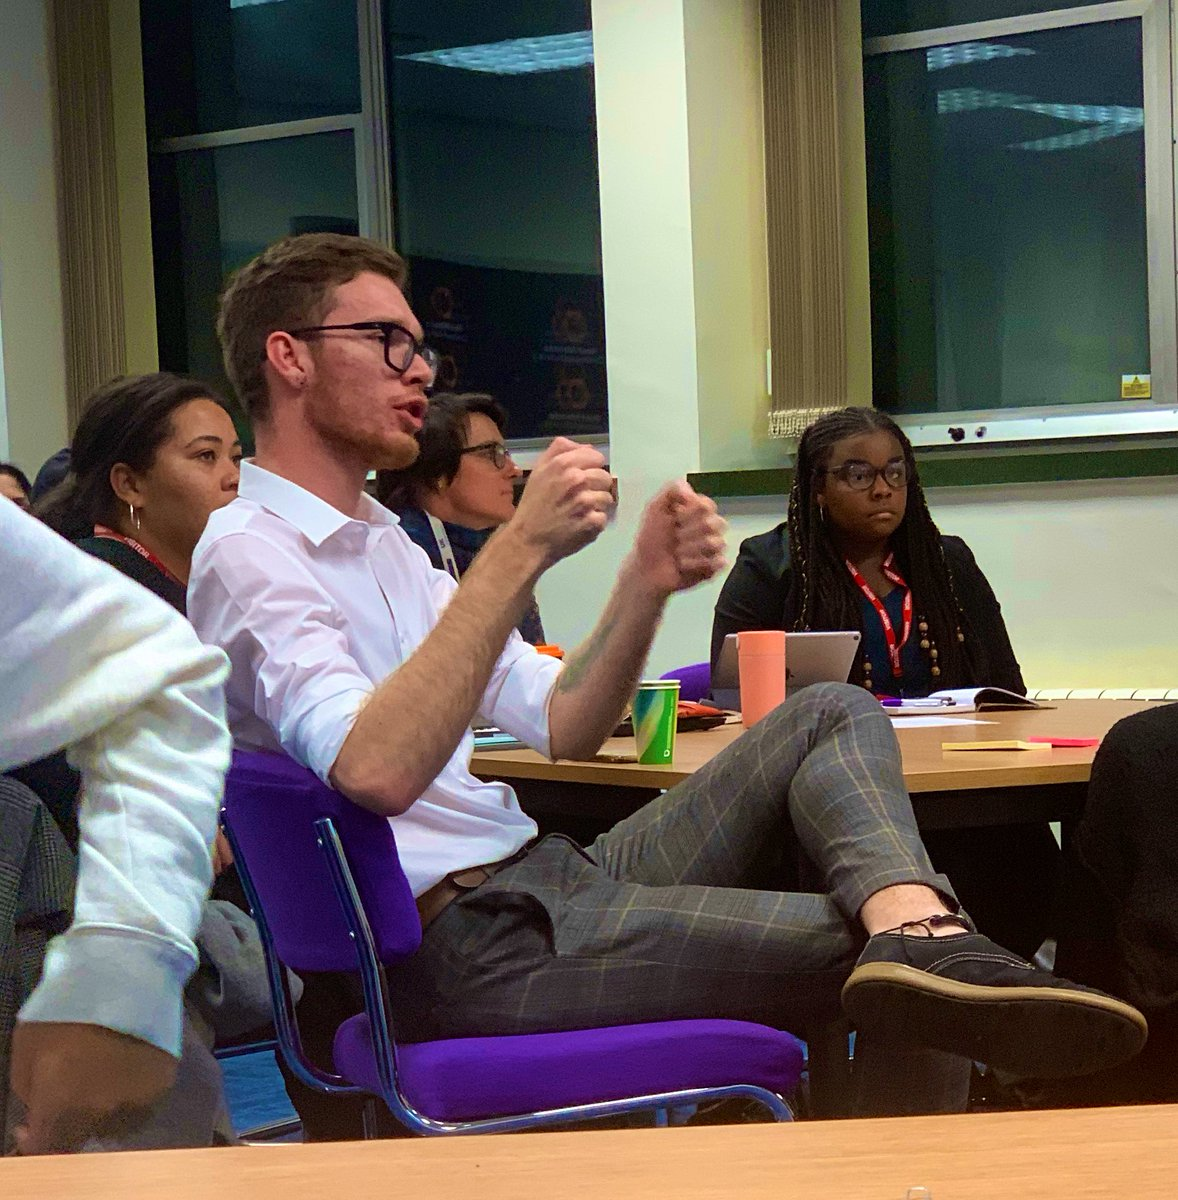 Having really interesting debates about the purpose of manifestos, accountability and who reads them 👀👀👀